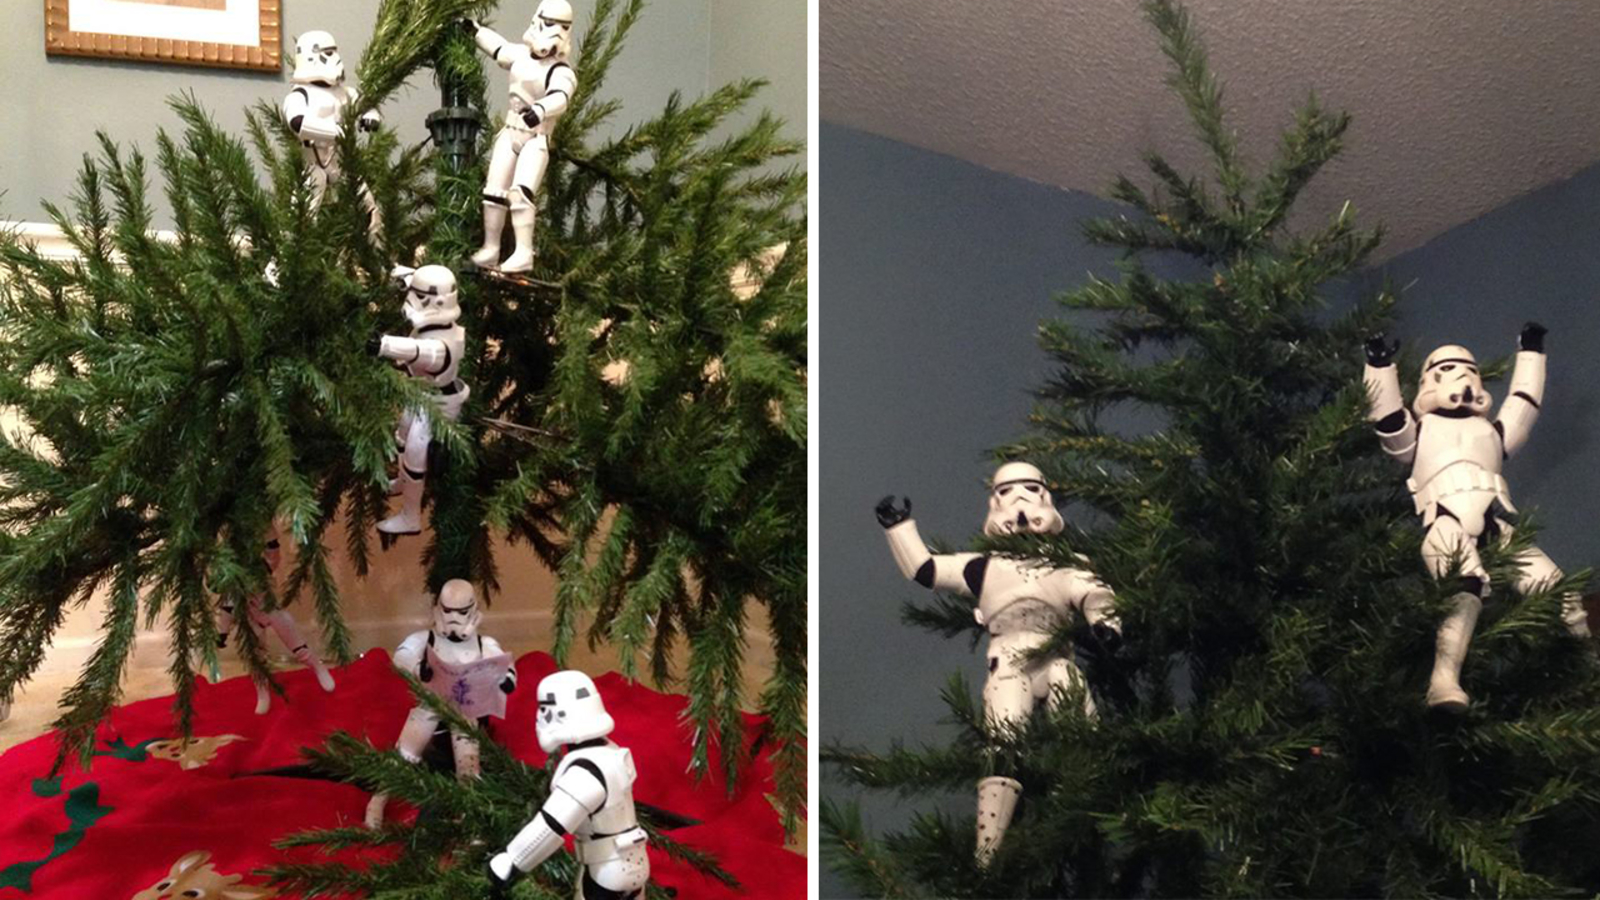 Star Wars Stormtrooper Toys Set Up Christmas Tree In Fun Viral Photos Abc13 Houston